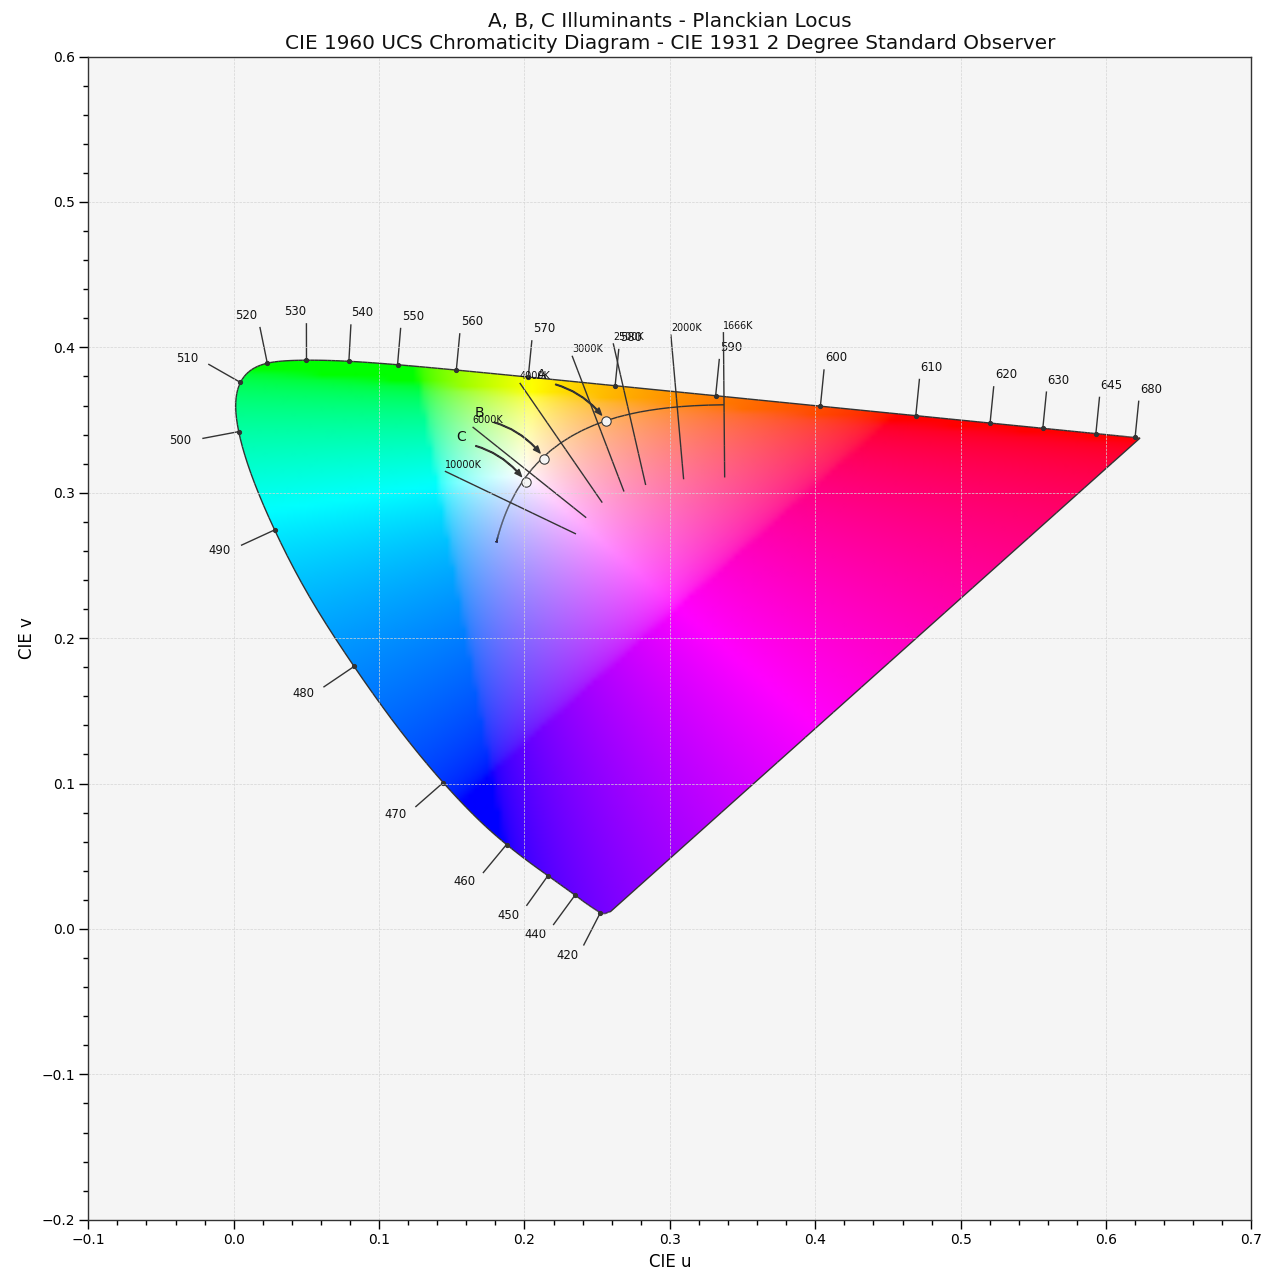 https://colour.readthedocs.io/en/develop/_static/Examples_Plotting_CCT_CIE_1960_UCS_Chromaticity_Diagram.png